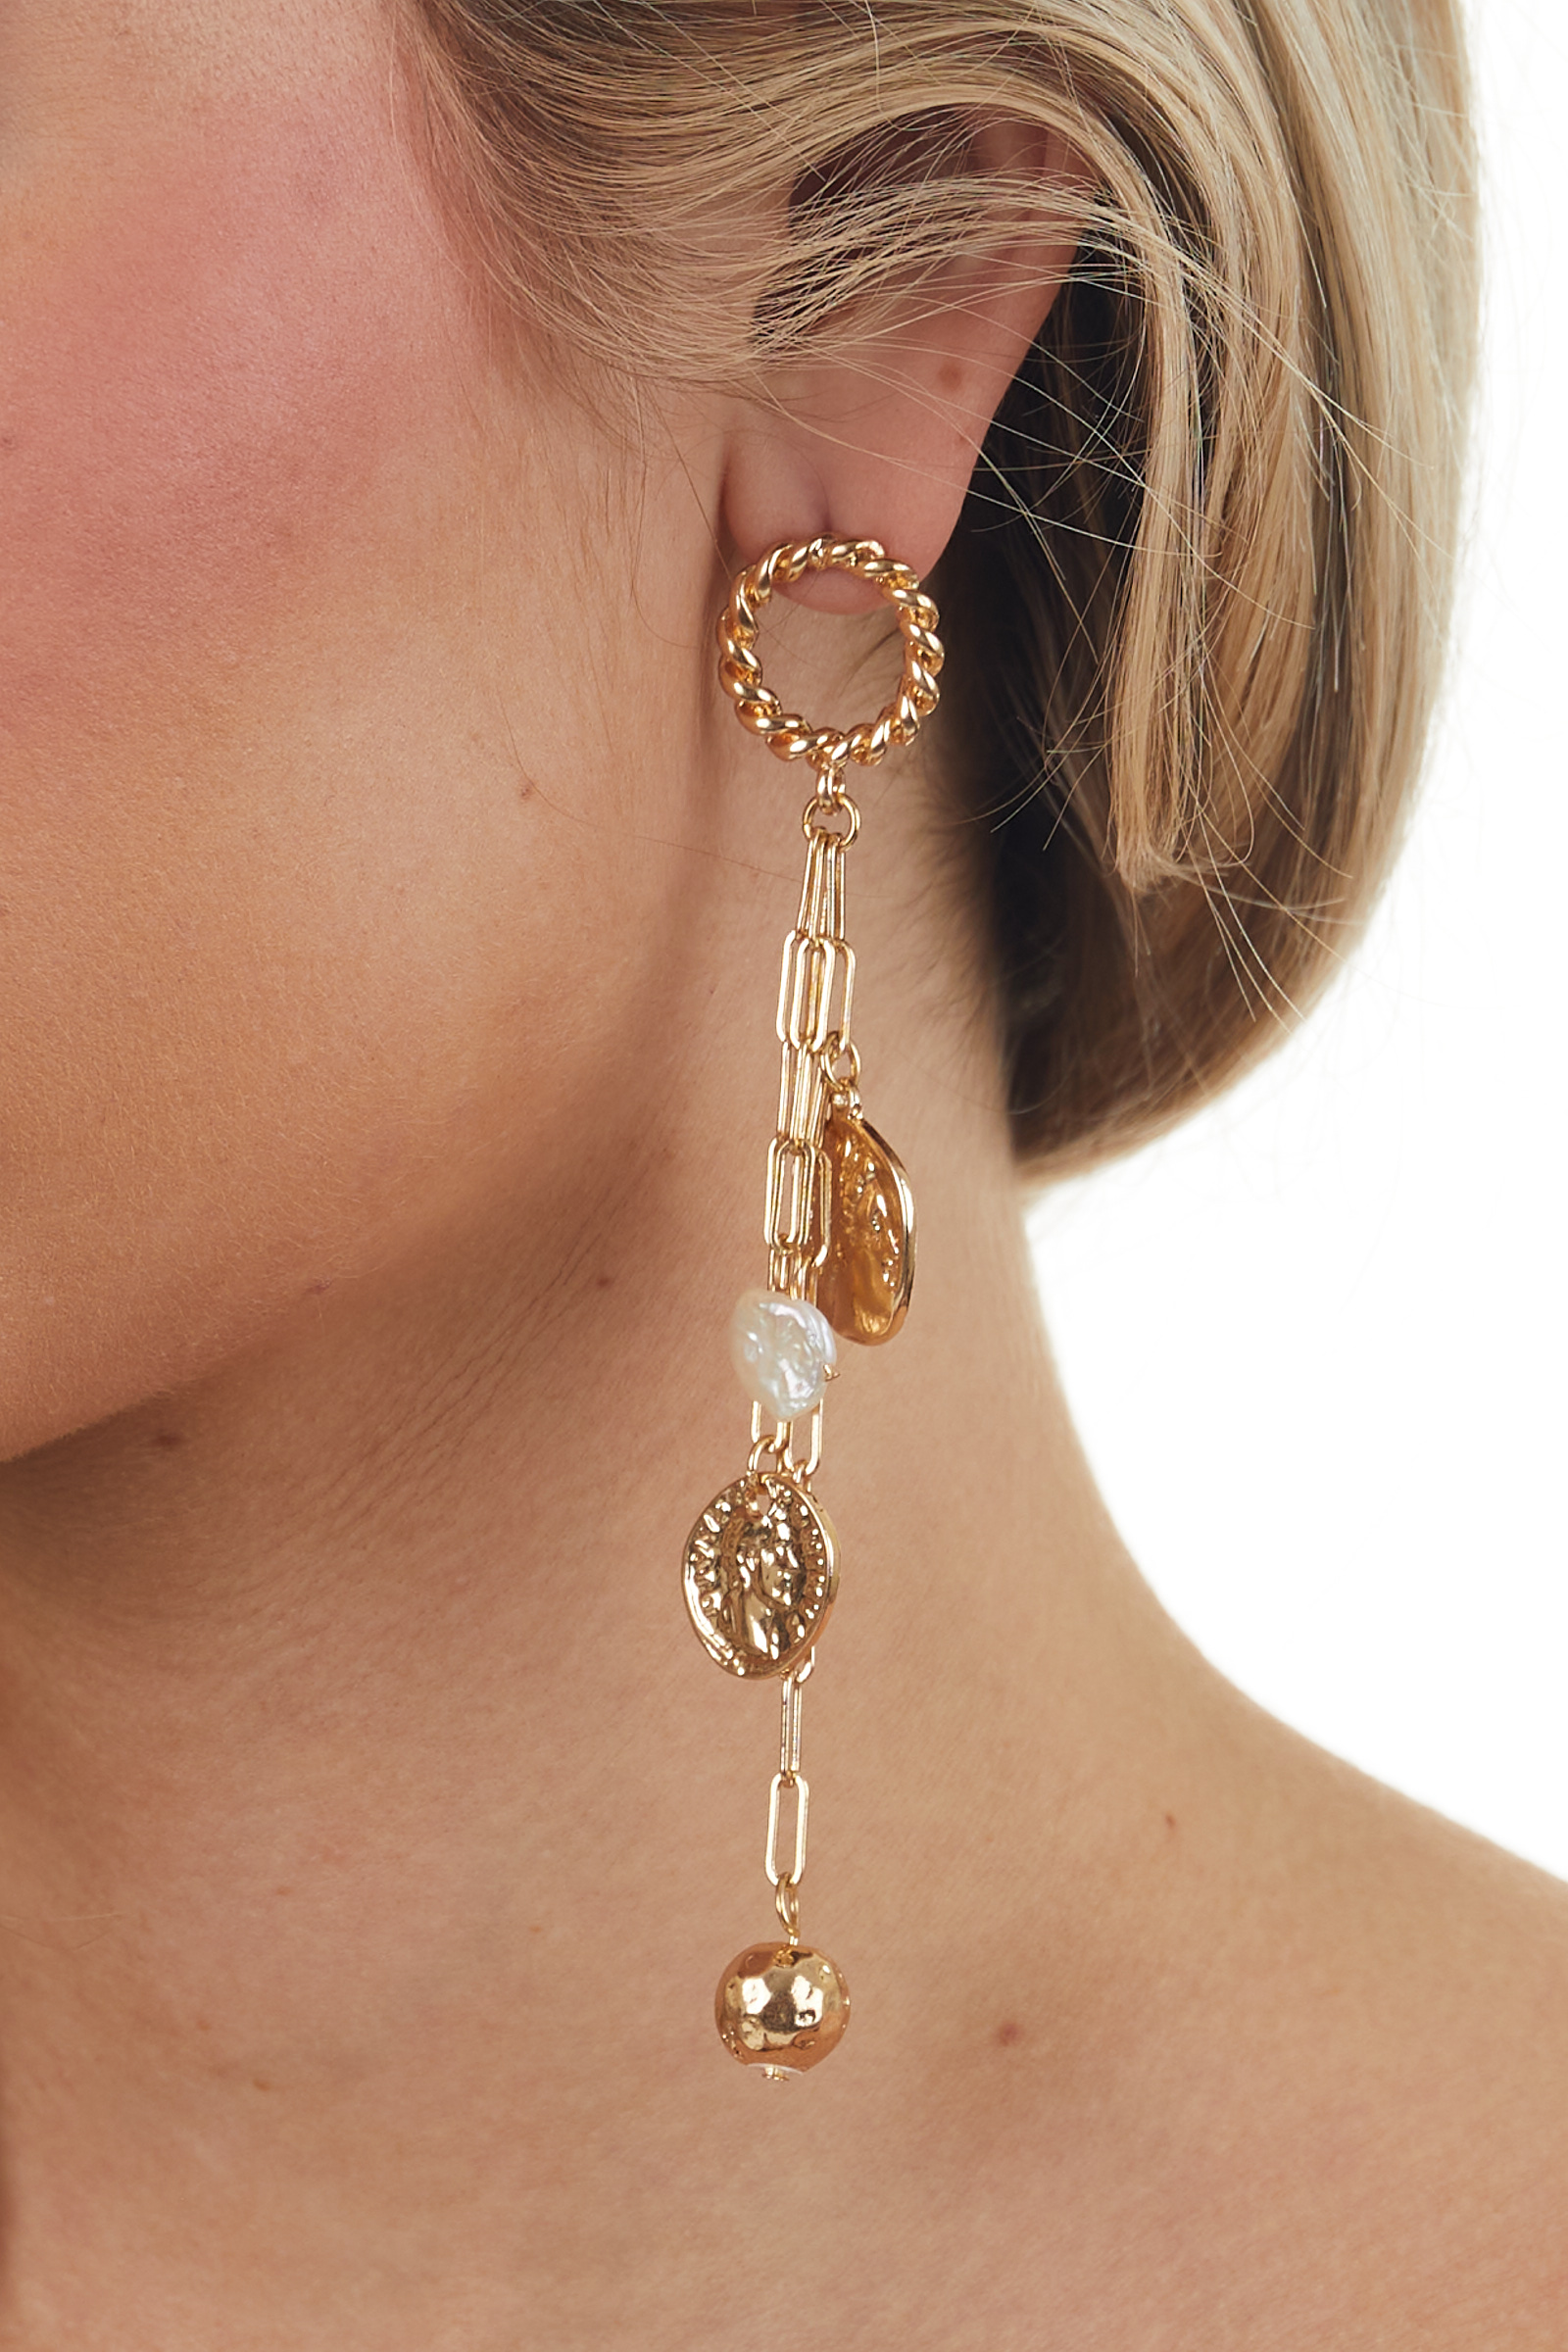 Gold Chain Dangle Earrings with Coin Charms